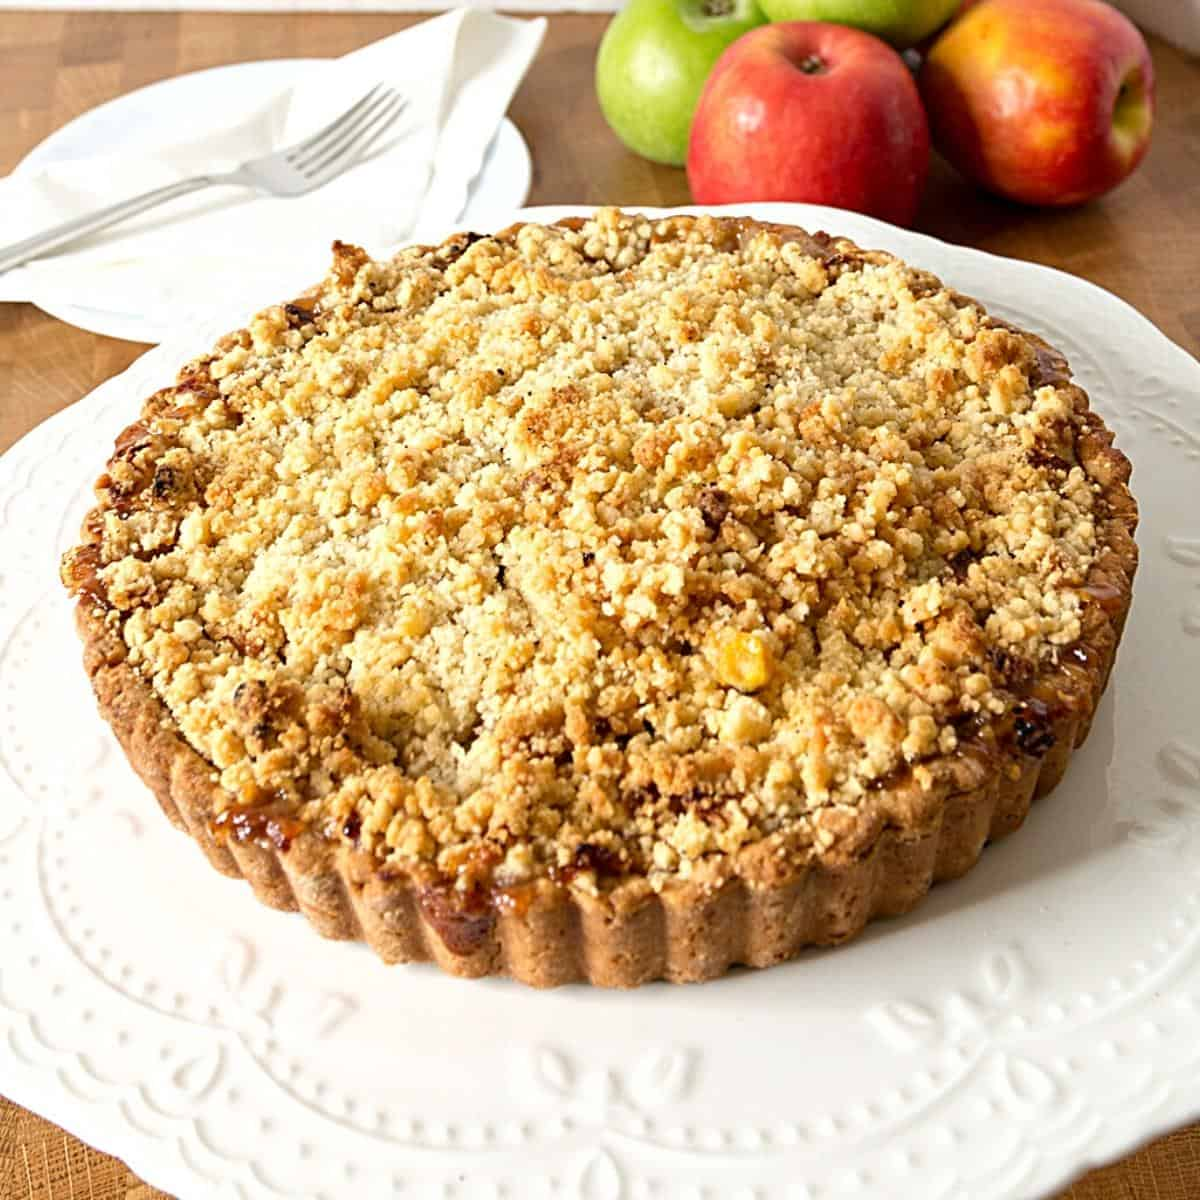 Apple crumble pie on a cake stand.